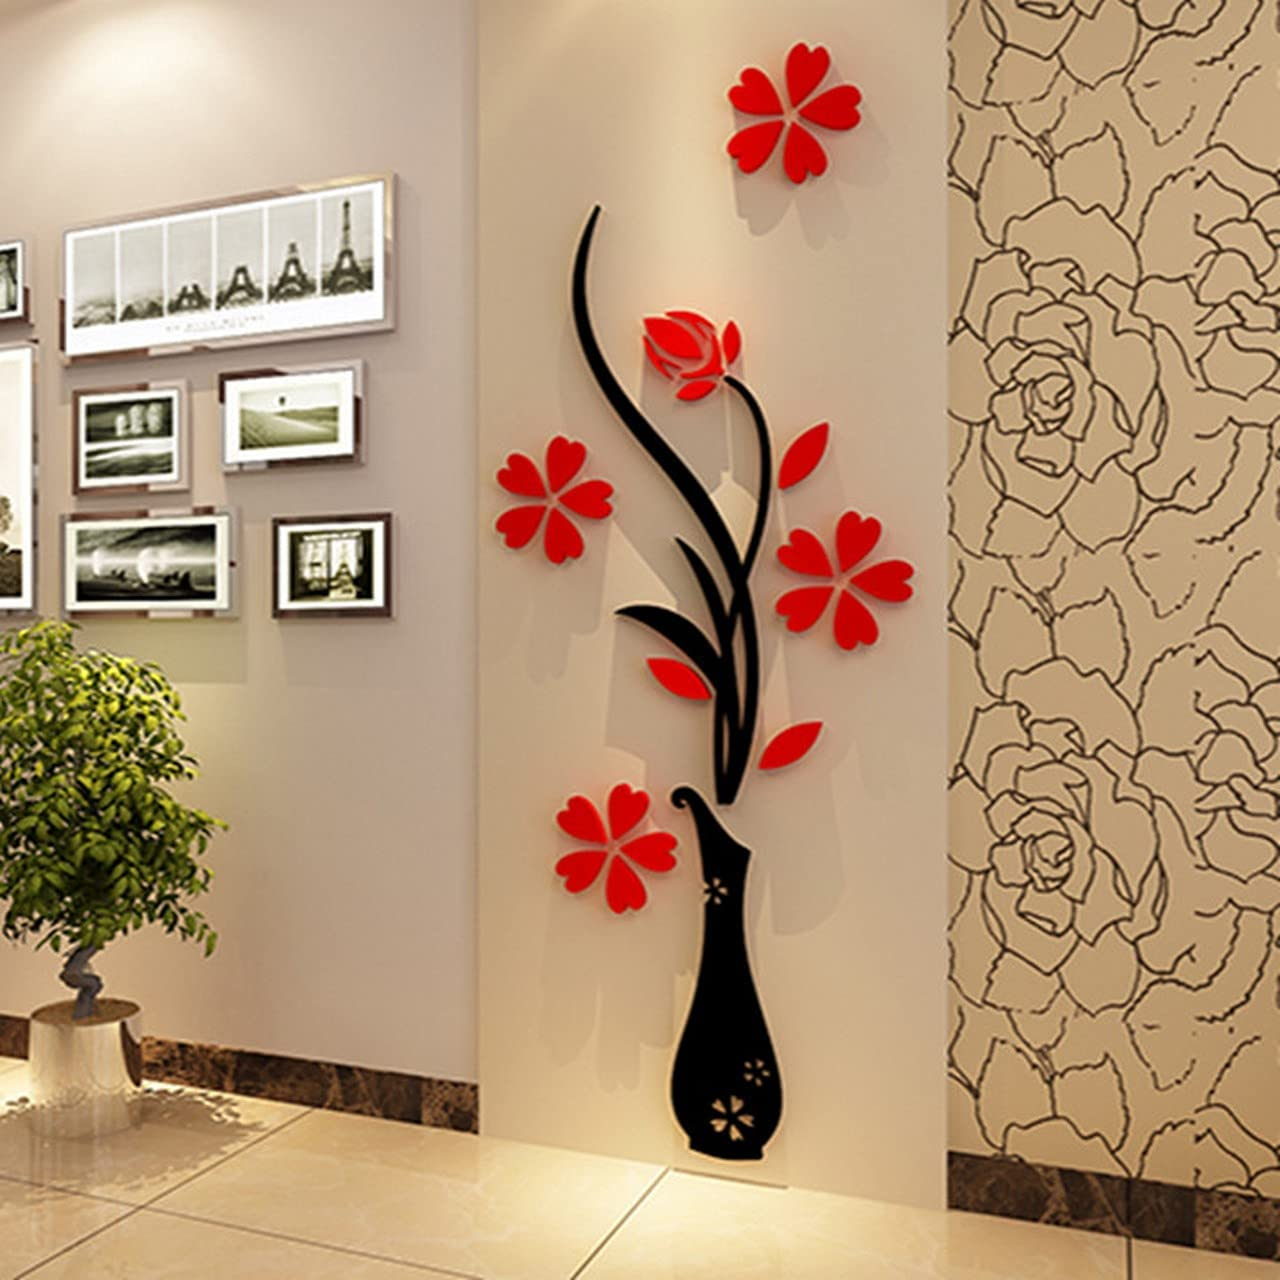 3D Max 76% OFF Acrylic Mirror Wall Decor Safety and trust Flower Removable Stickers Vase 79